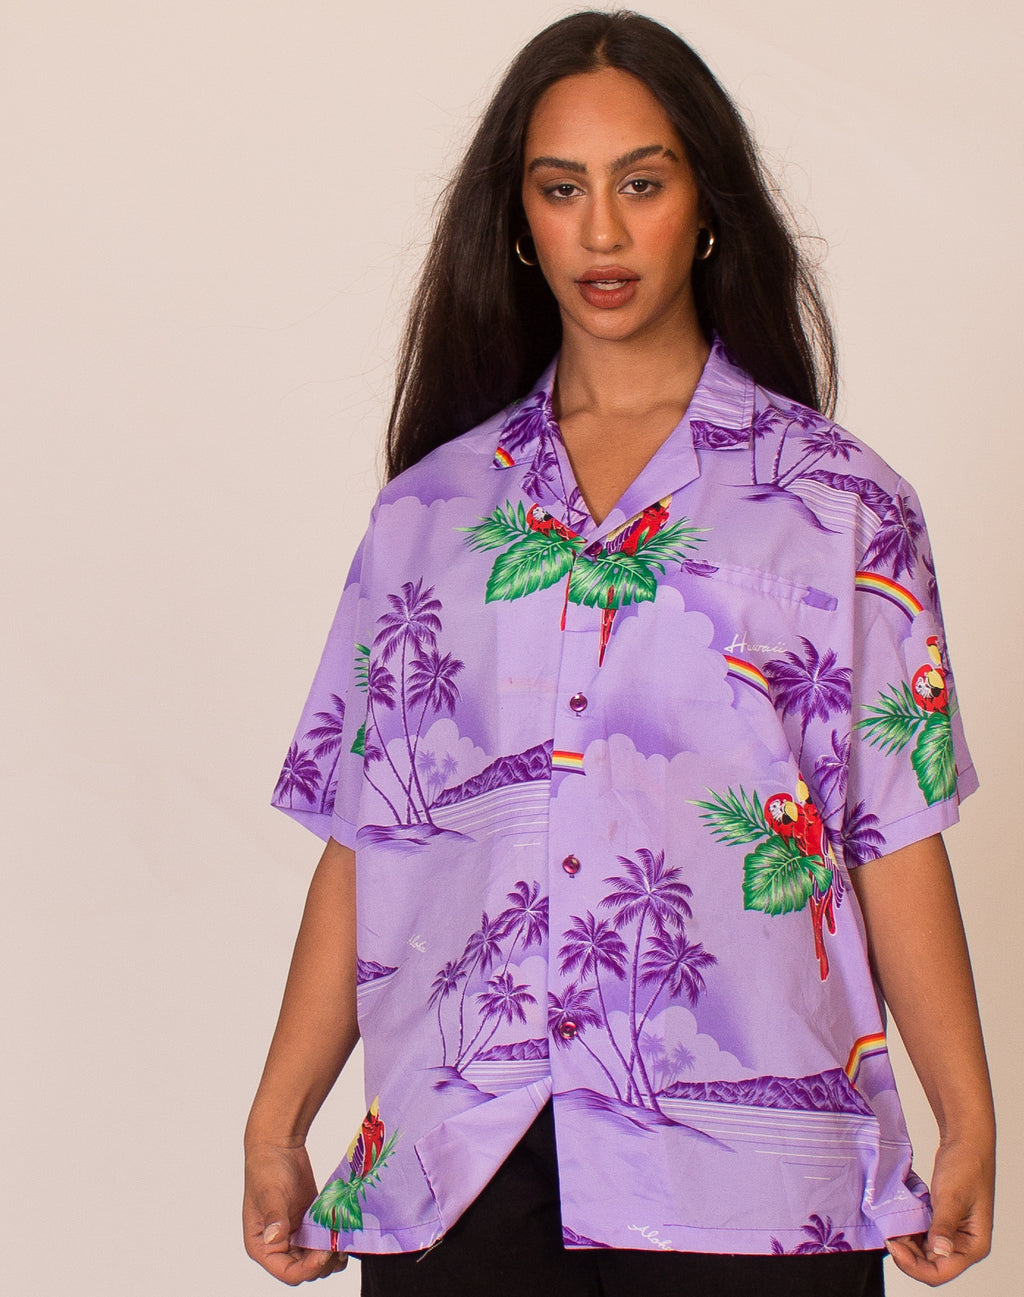 PURPLE PARROT HAWAIIAN SHIRT